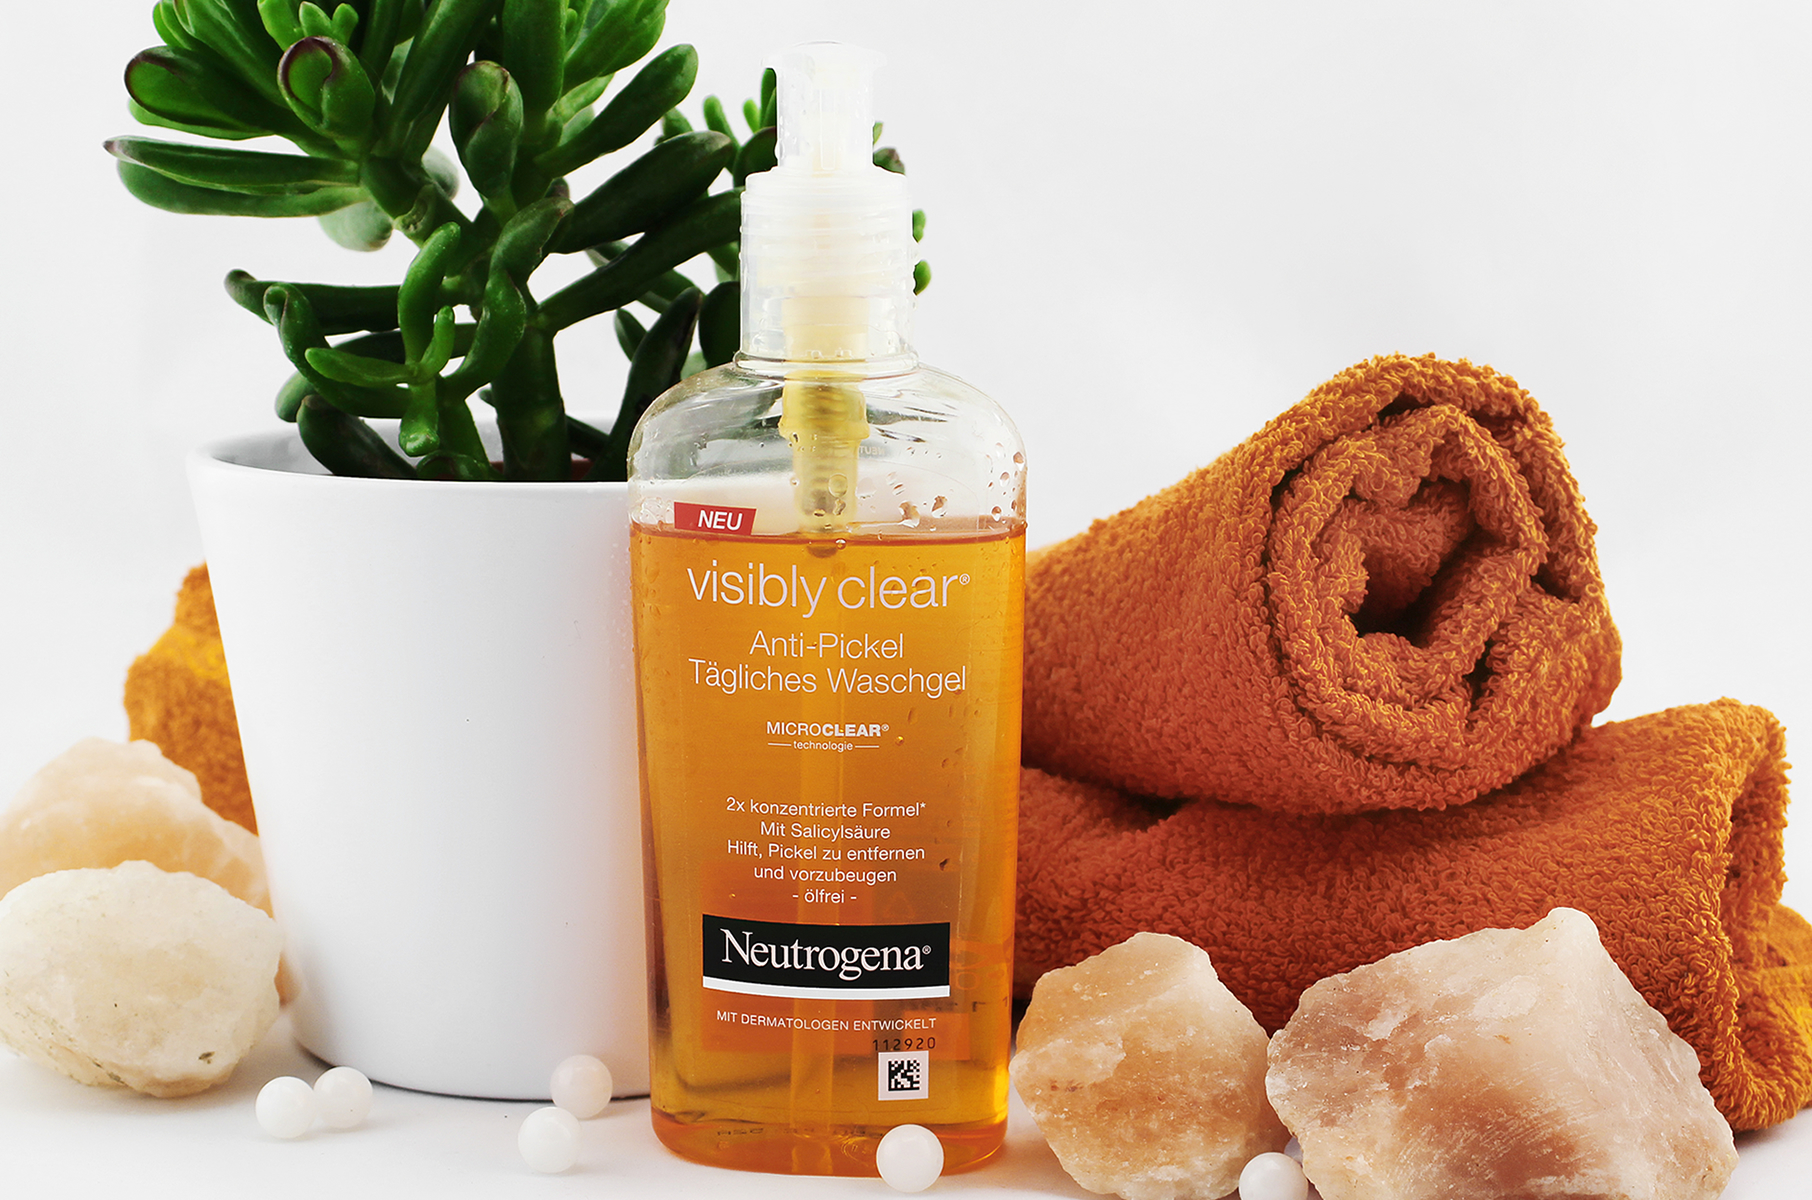 Neutrogena Visibly Clear Waschgel | A Little Fashion | https://www.filizity.com/beauty/neutrogena-visibly-clear-waschgel